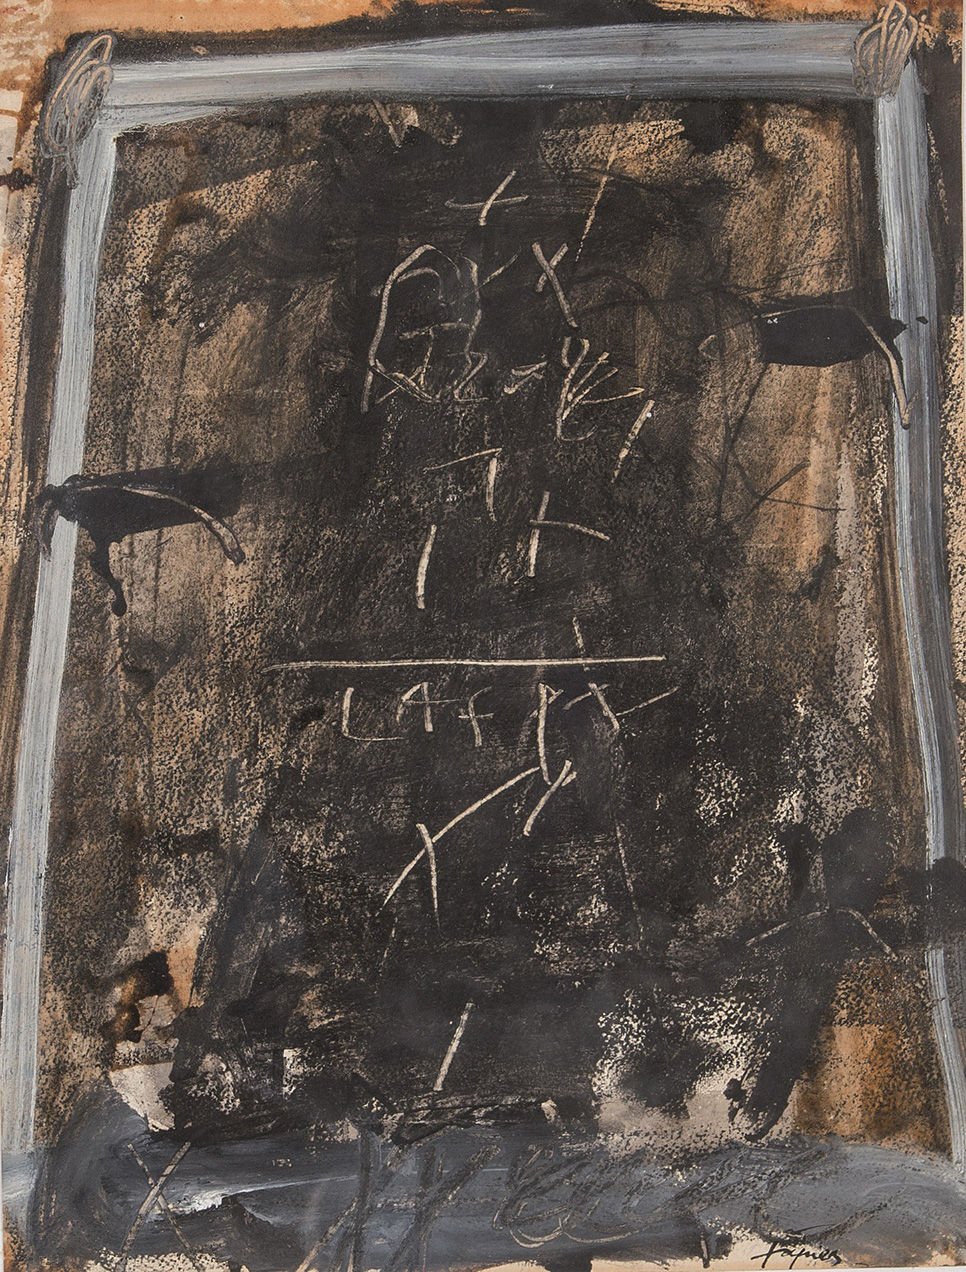 Antoni-Tapies-Homenaje-a-Cesar-Vallejo-1968_th